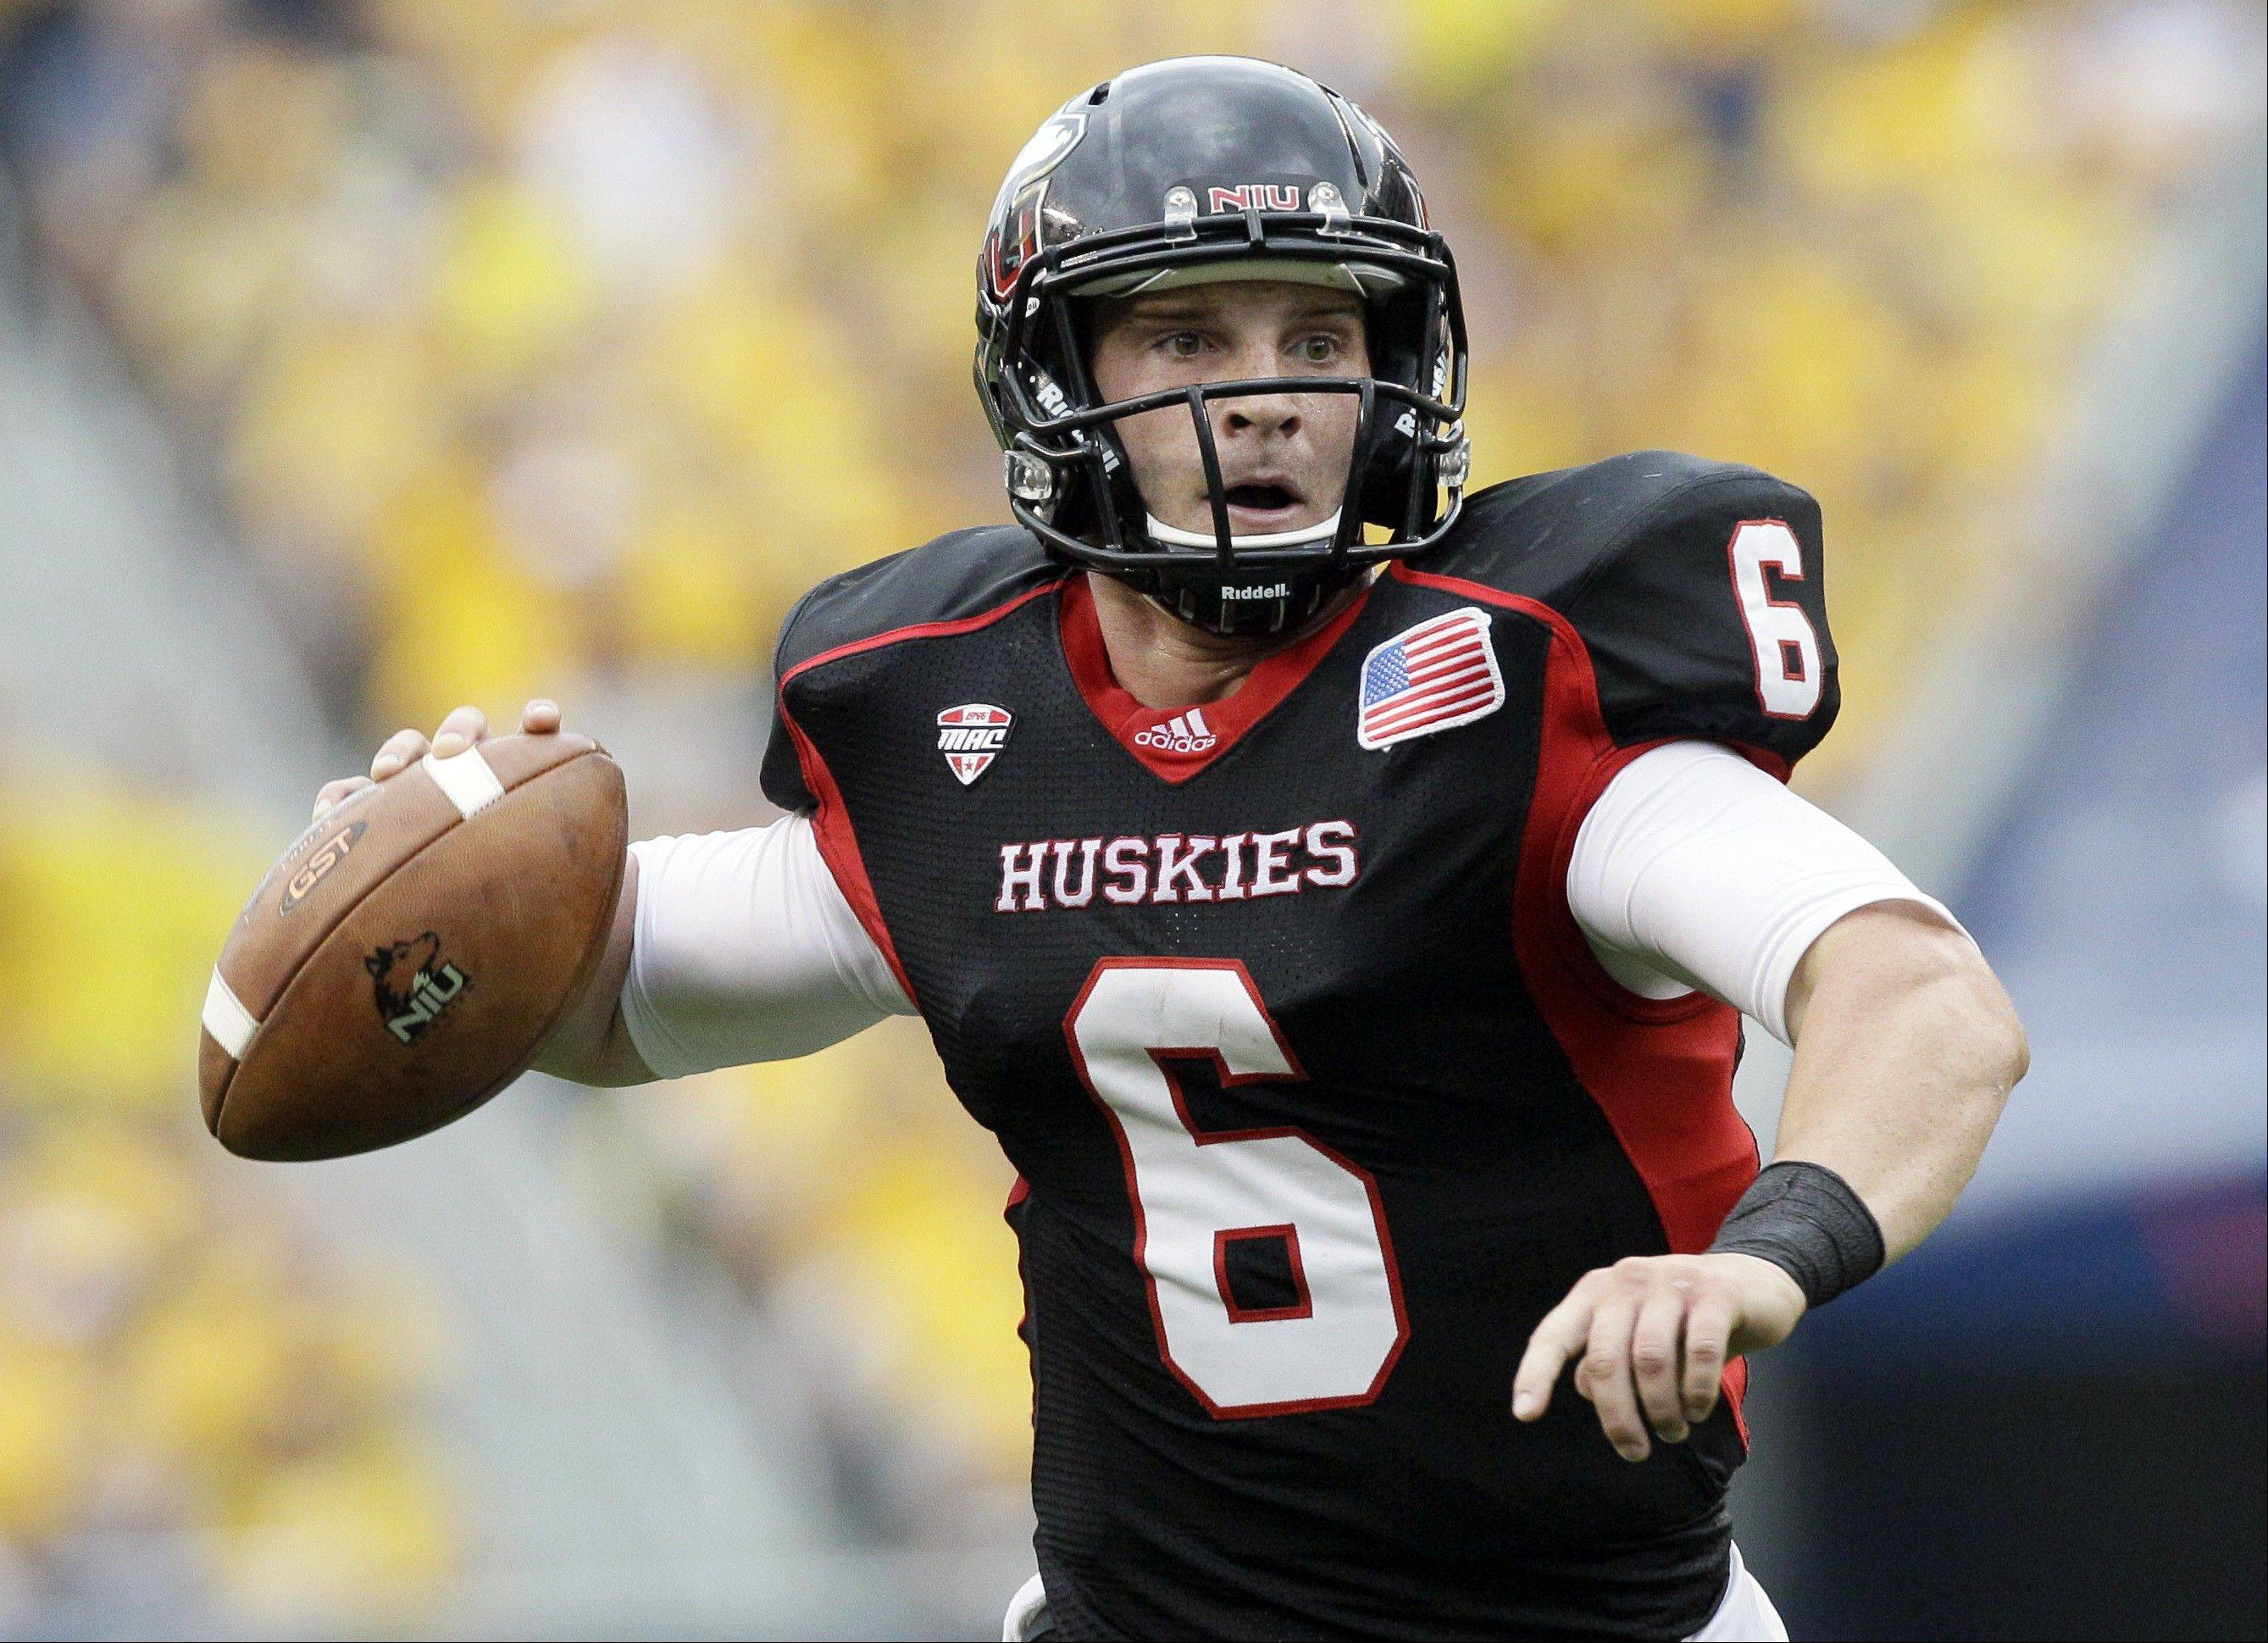 NIU facing another big test with Toledo